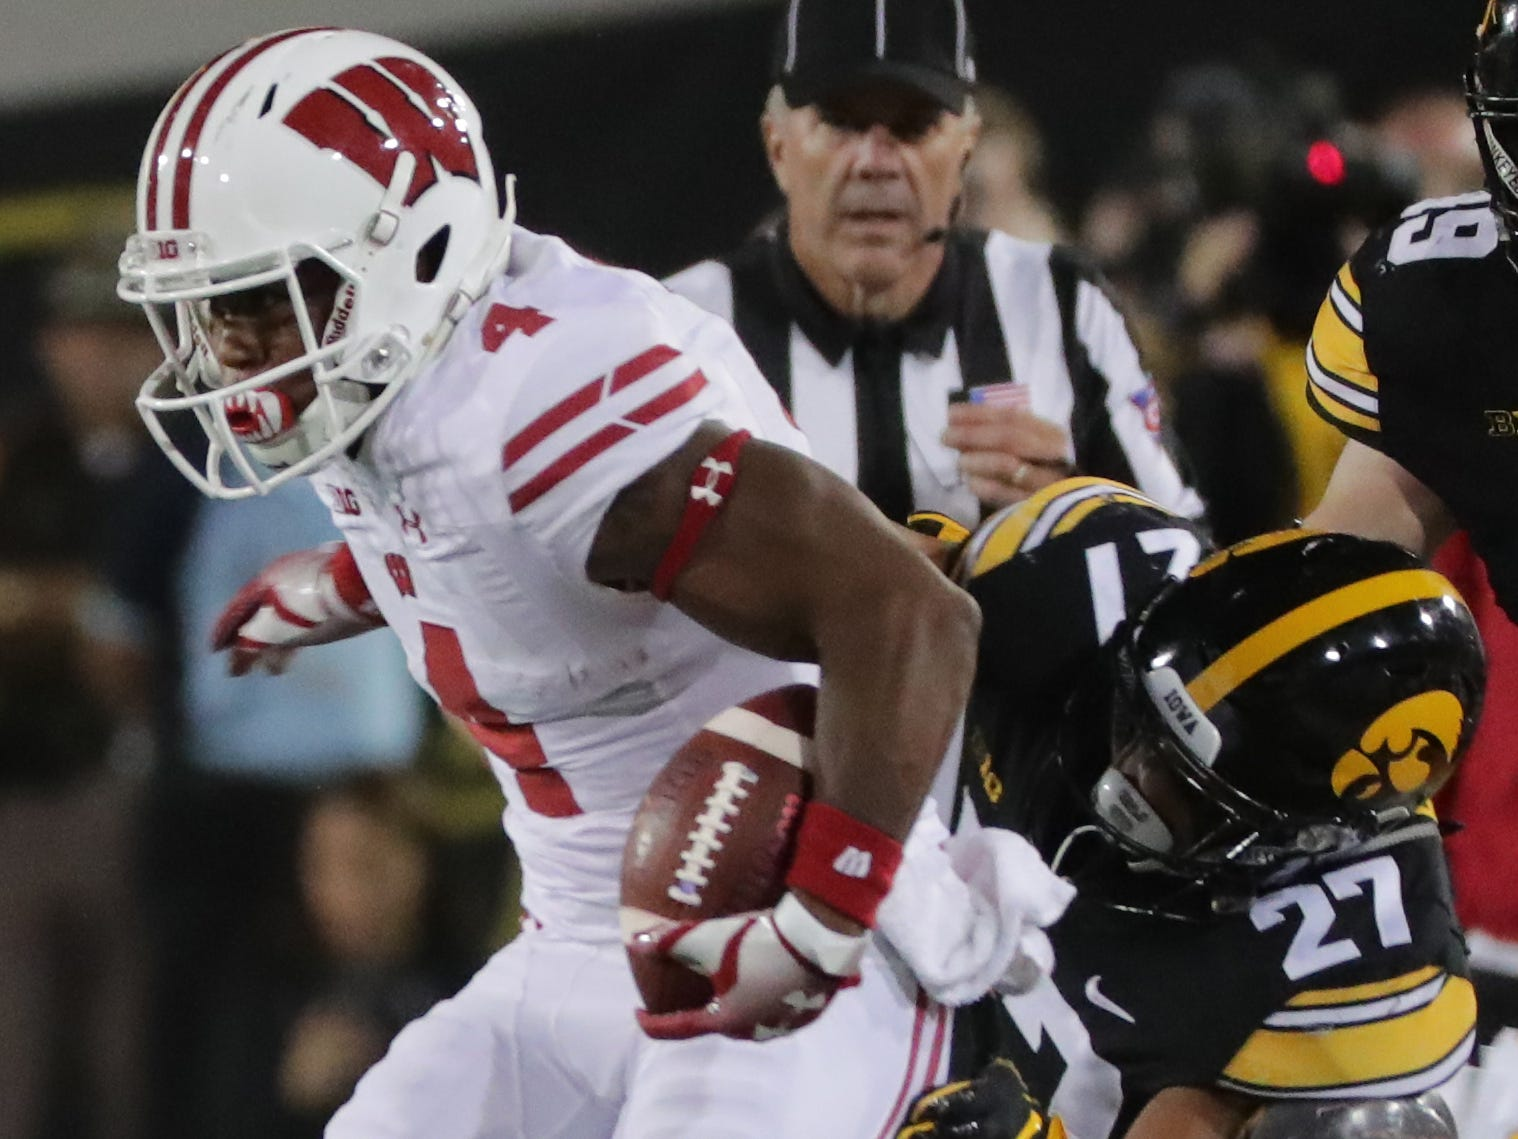 Wisconsin wide receiver A.J. Taylor   picks up 22 yards on a reception despite the efforts of Iowa defensive back Amani Hooker.